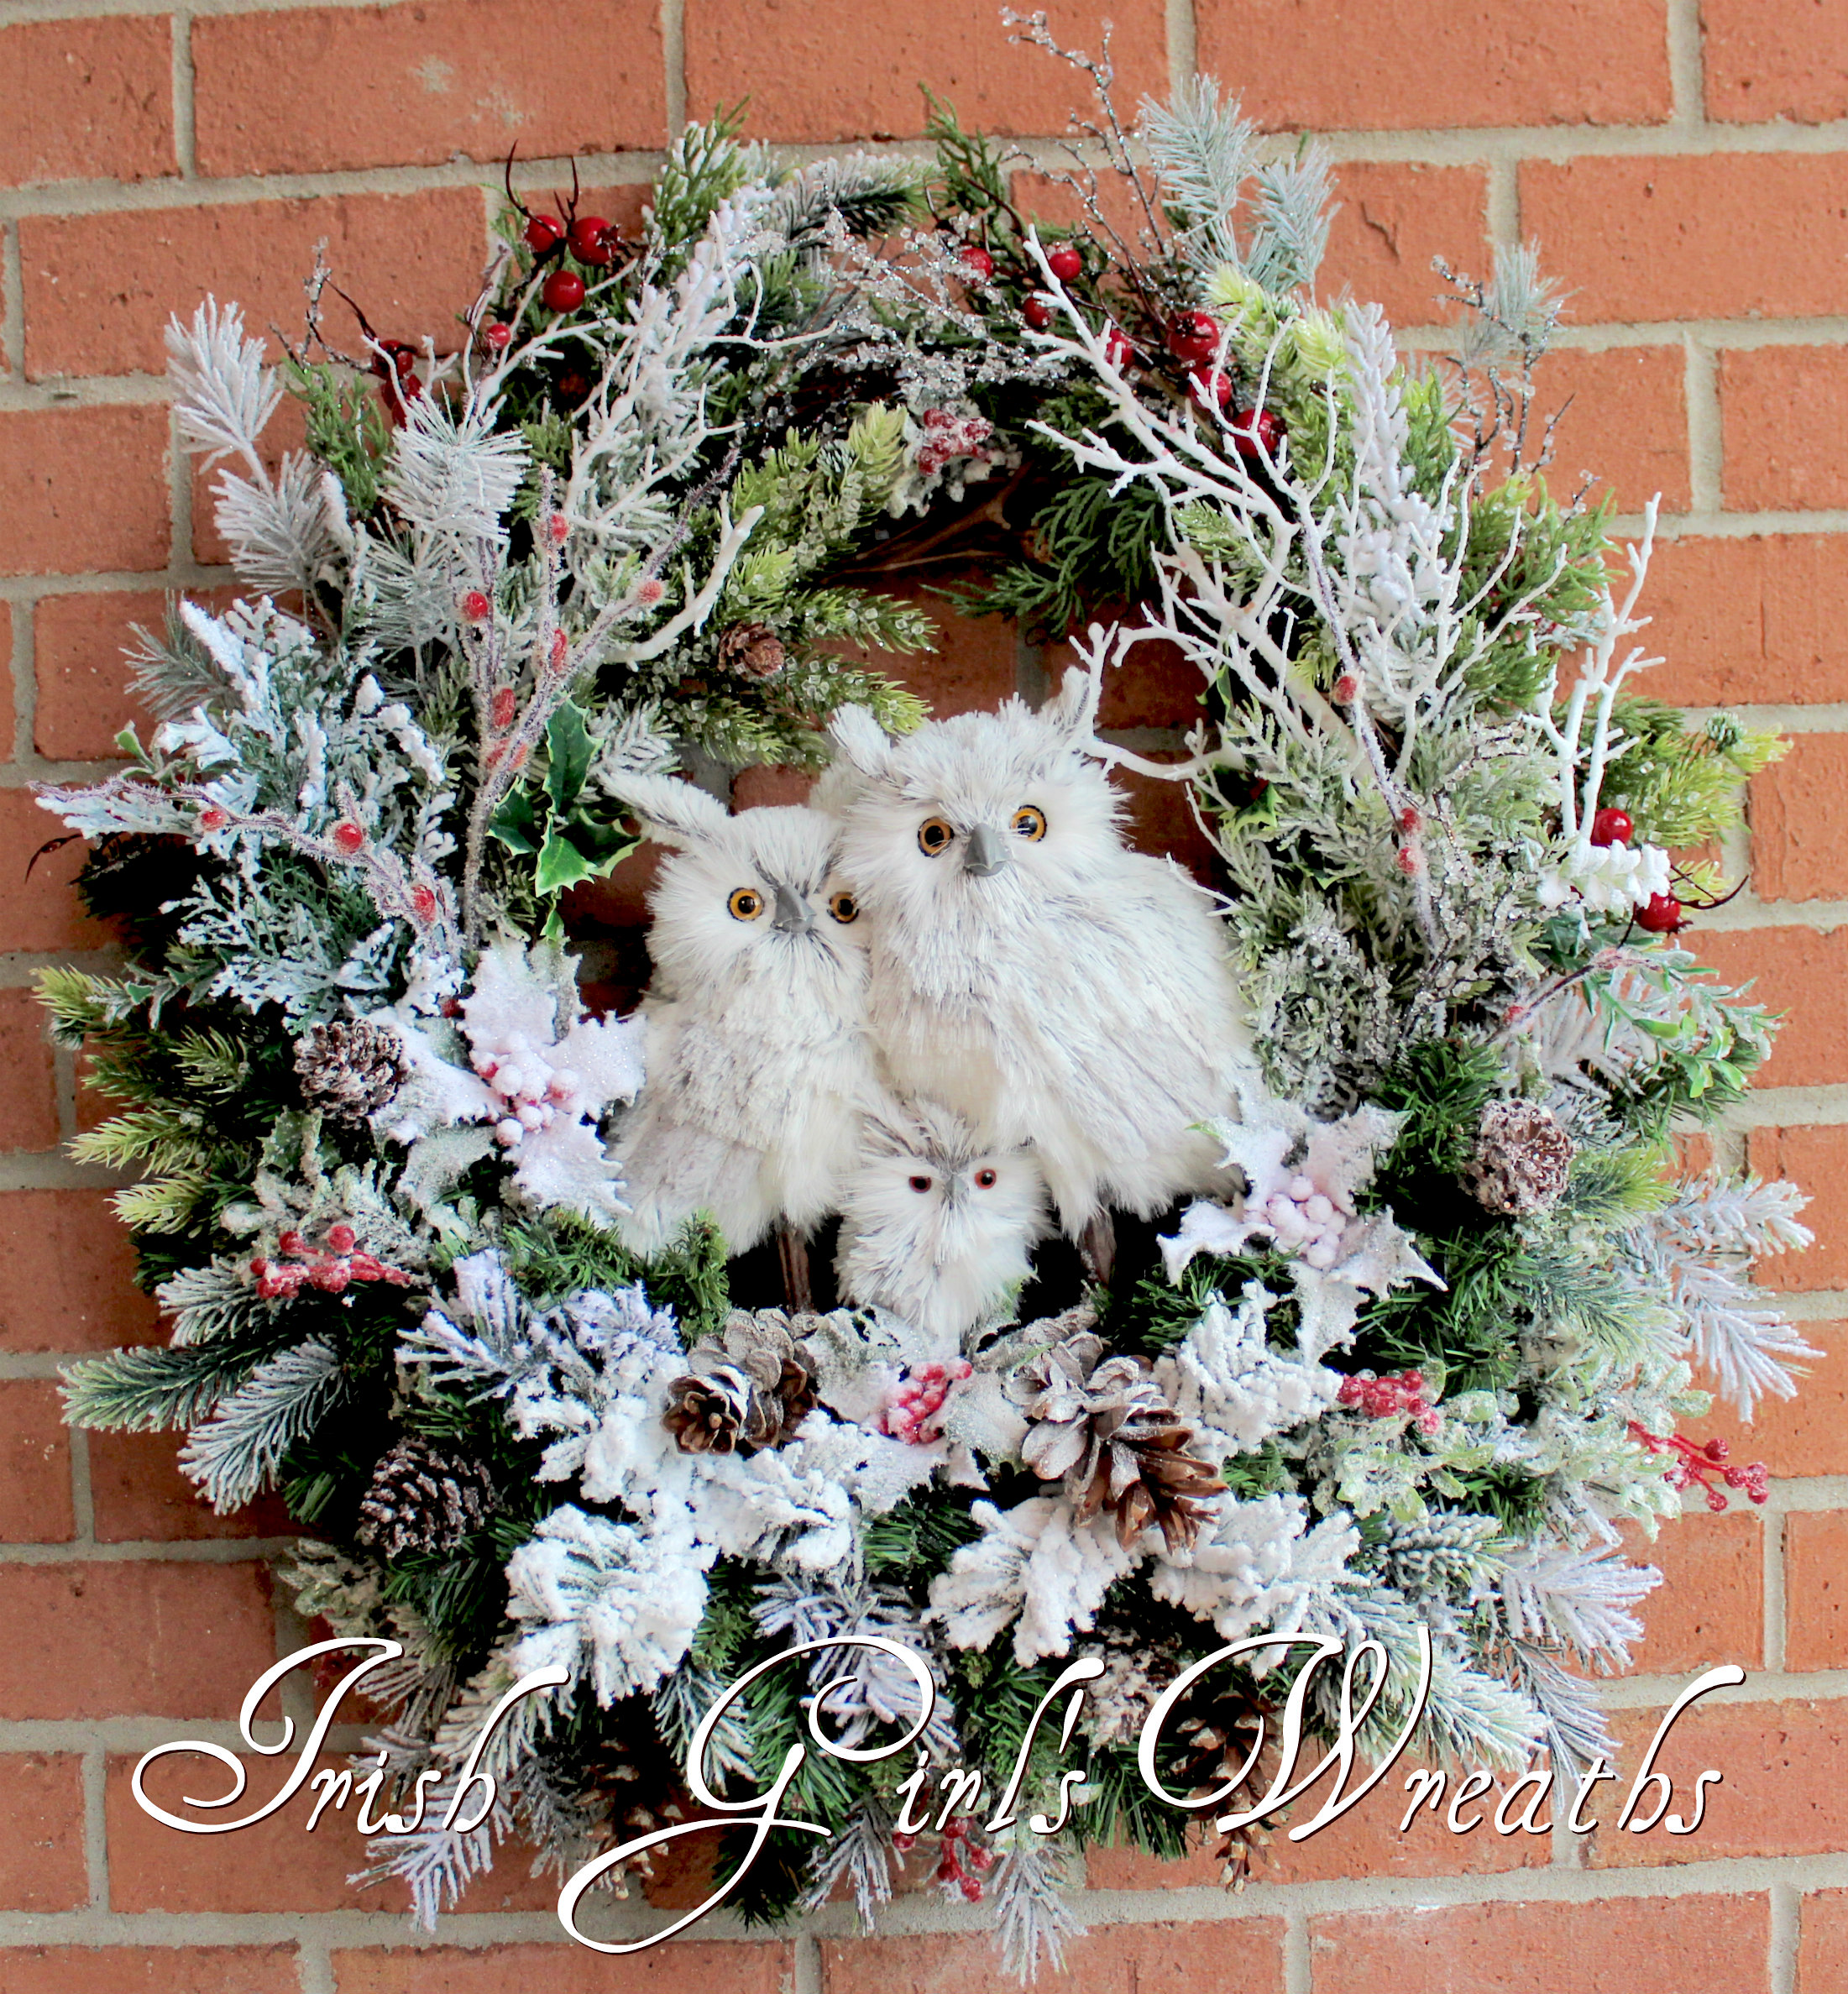 Winter Owl Family Wreath, custom for Judy!